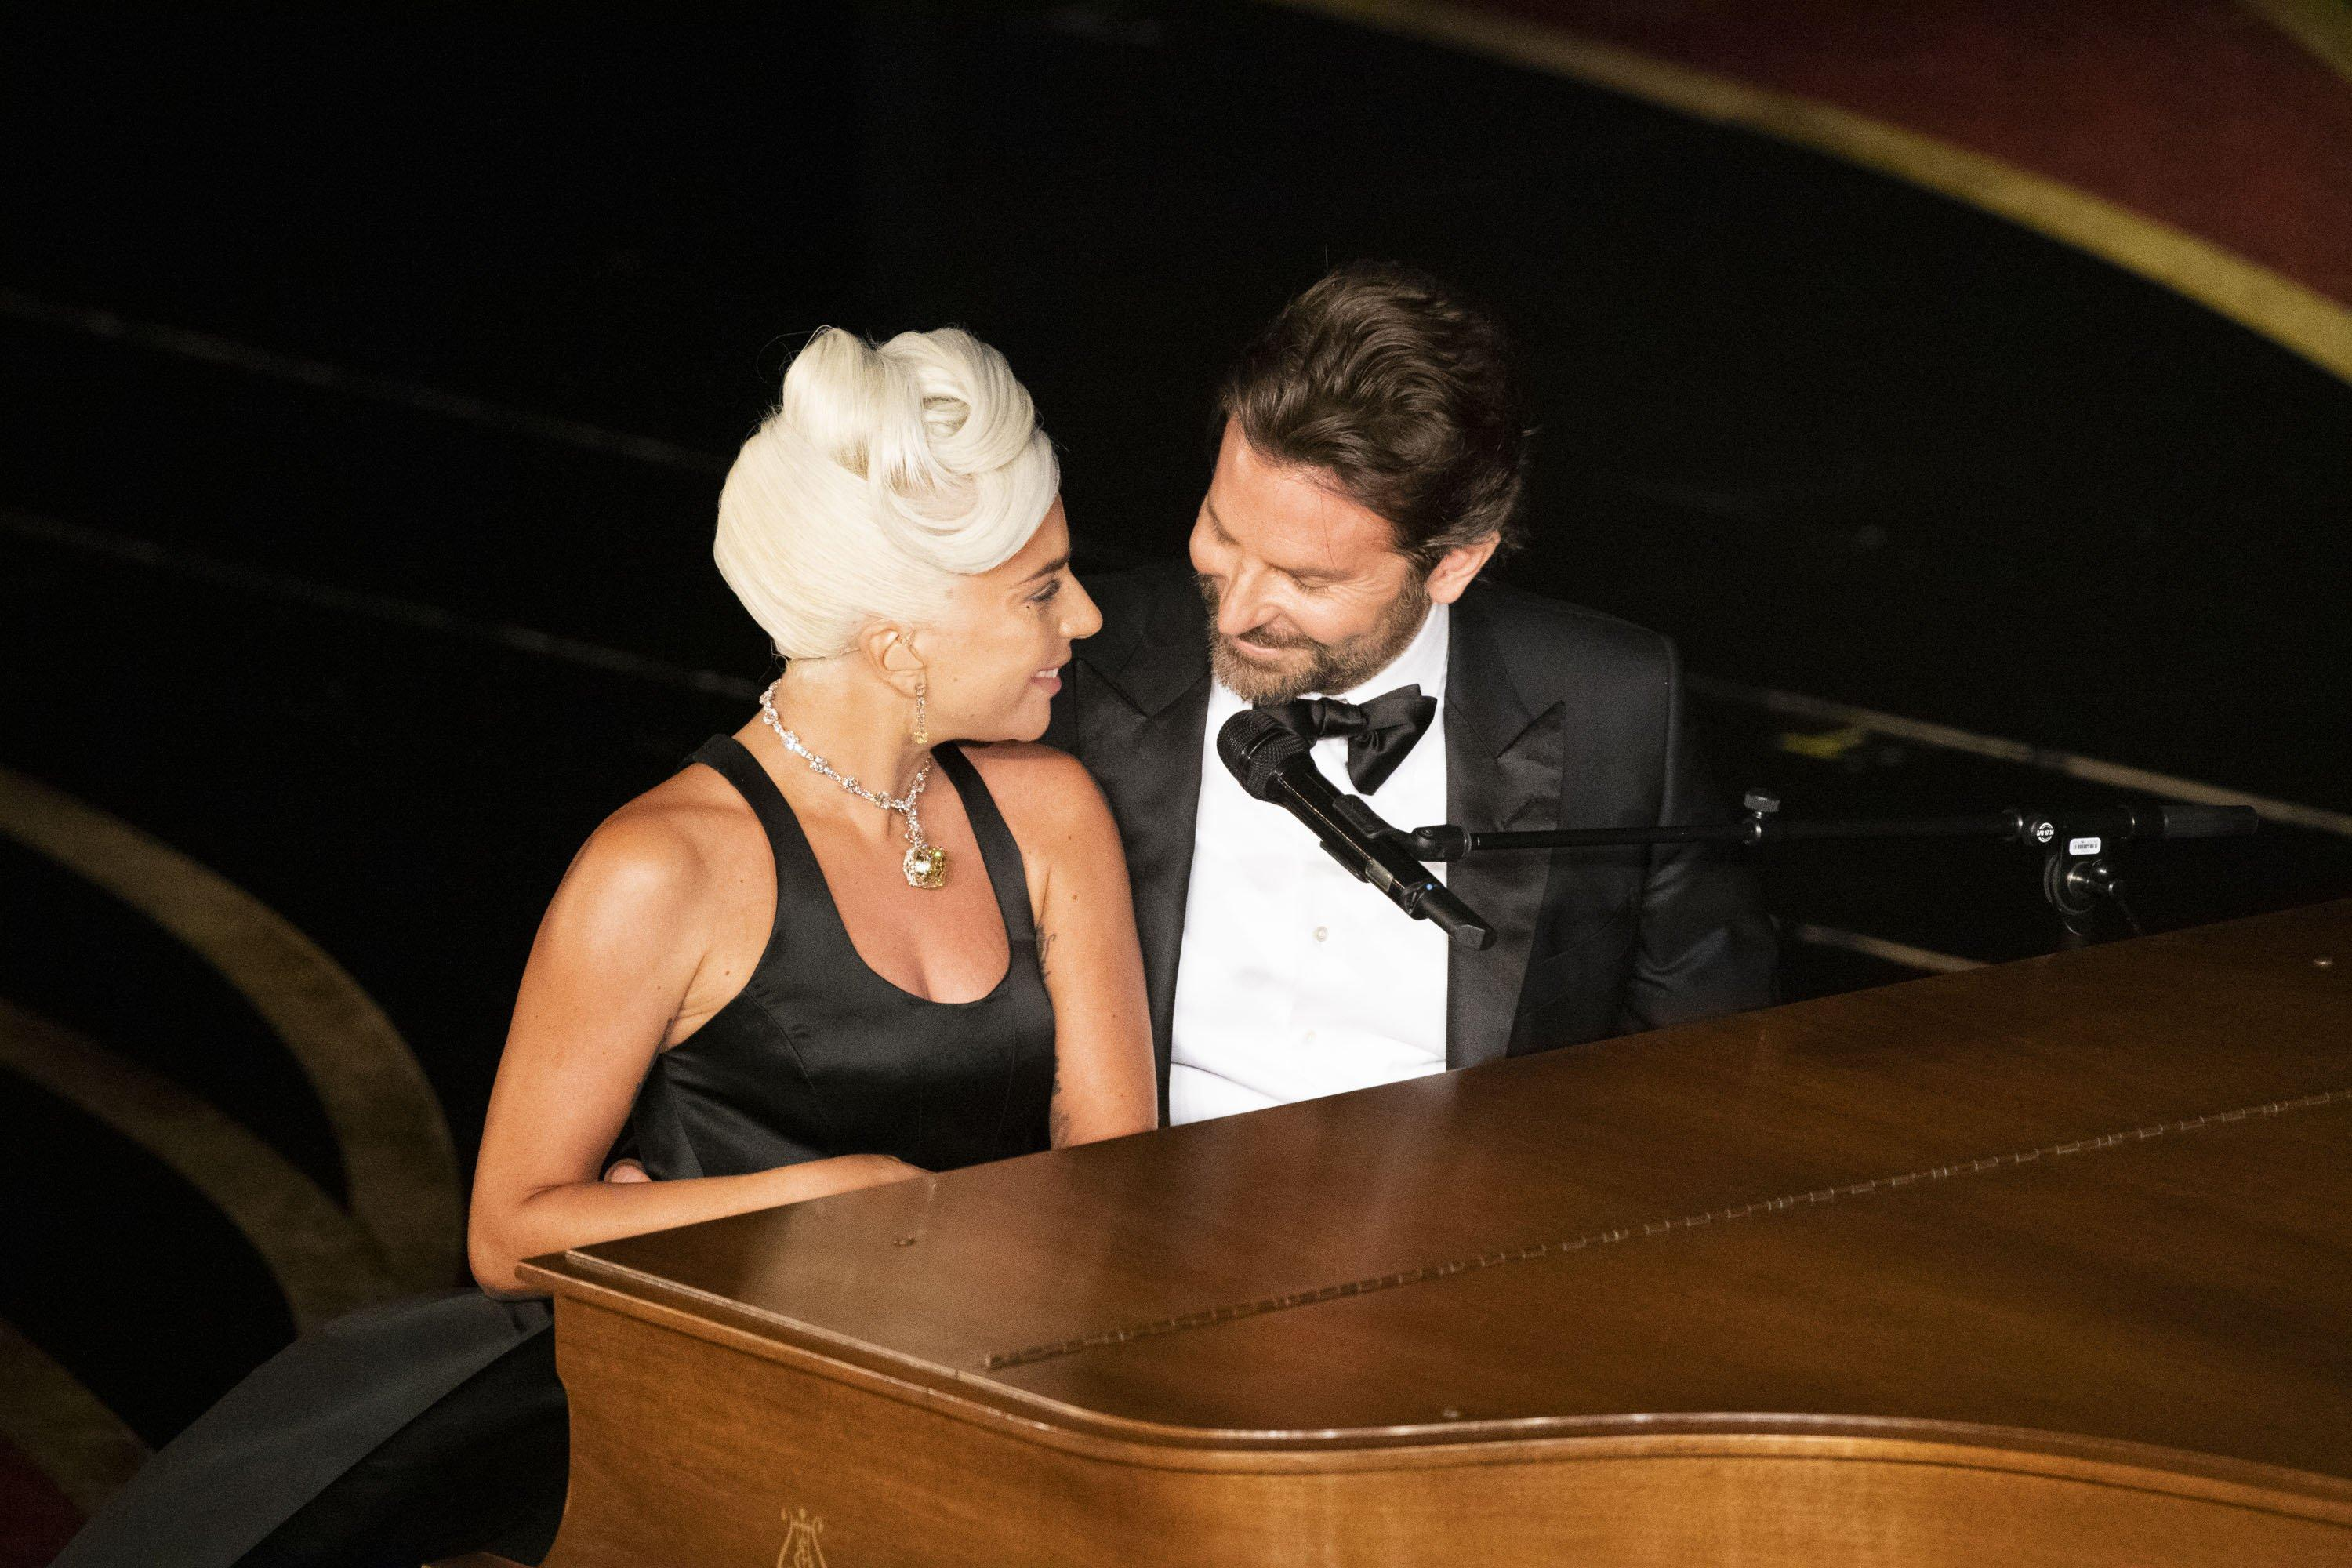 What Lady Gaga and Bradley Cooper Have Said About Each Other